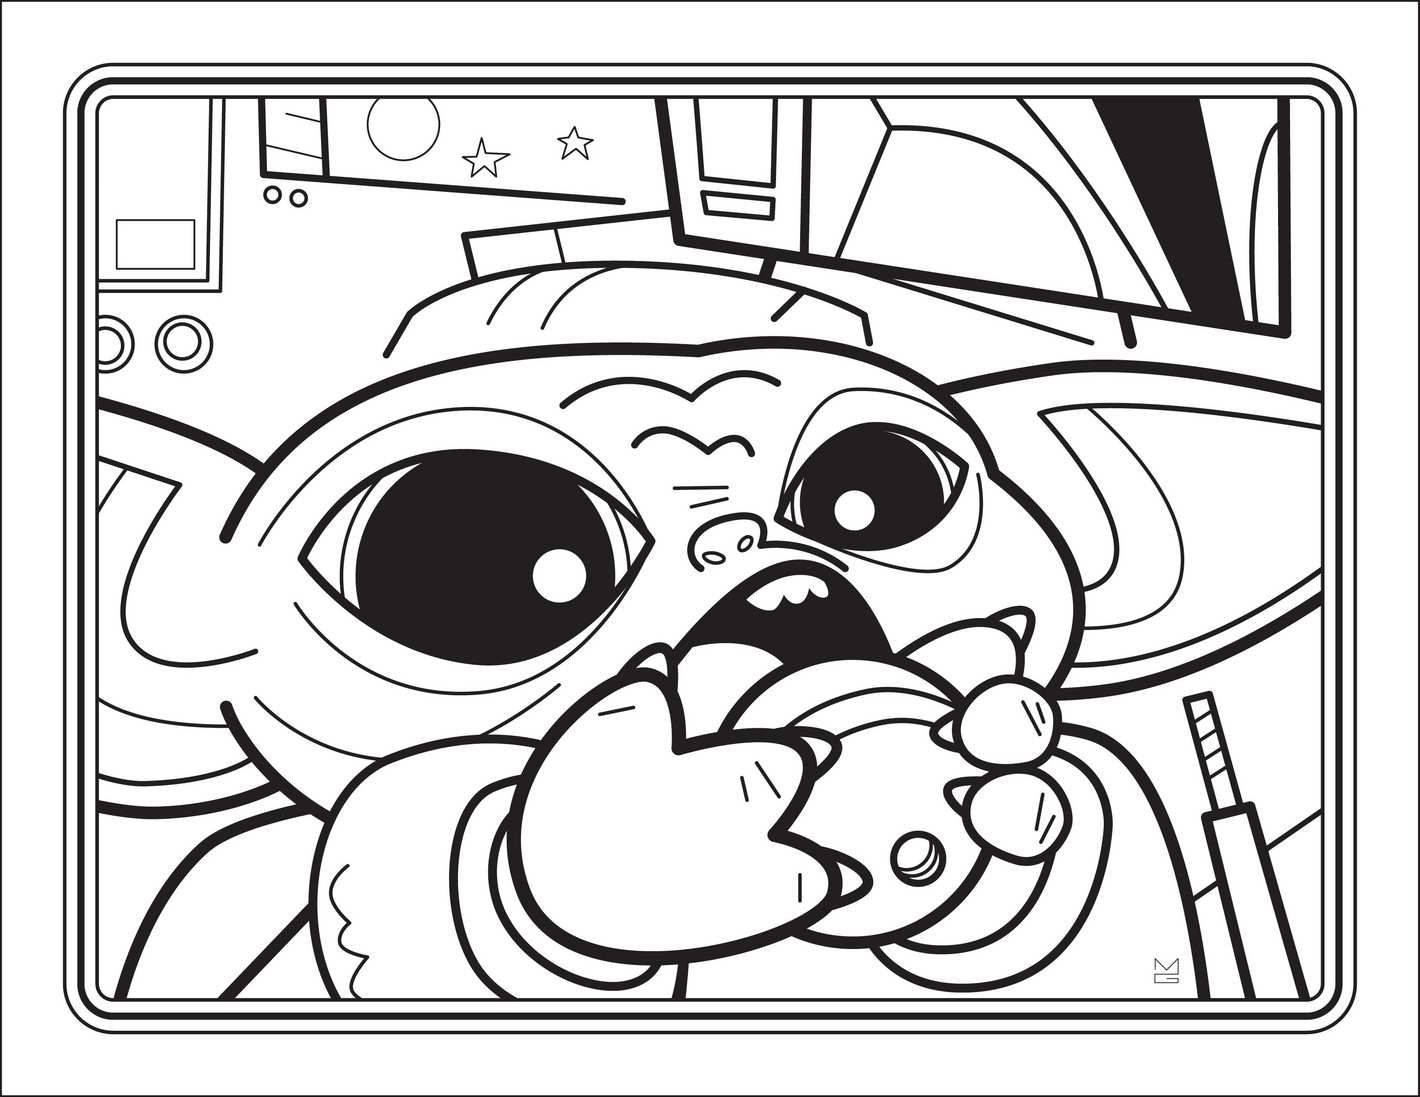 The Unofficial Baby Yoda Coloring Book in 2020 Baby